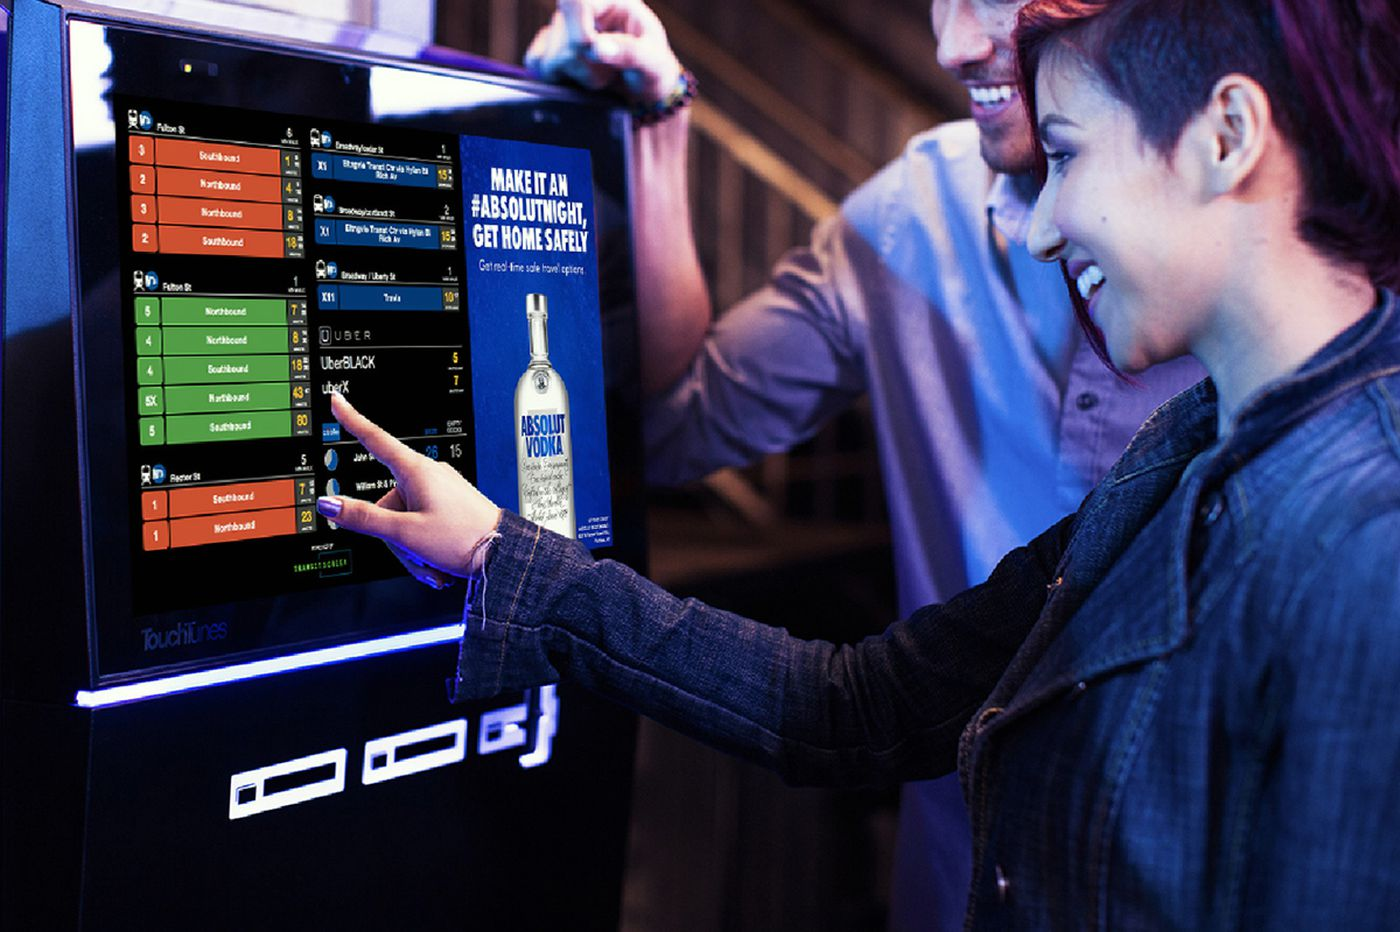 Digital jukebox advises Philly bar patrons on how to get home safely